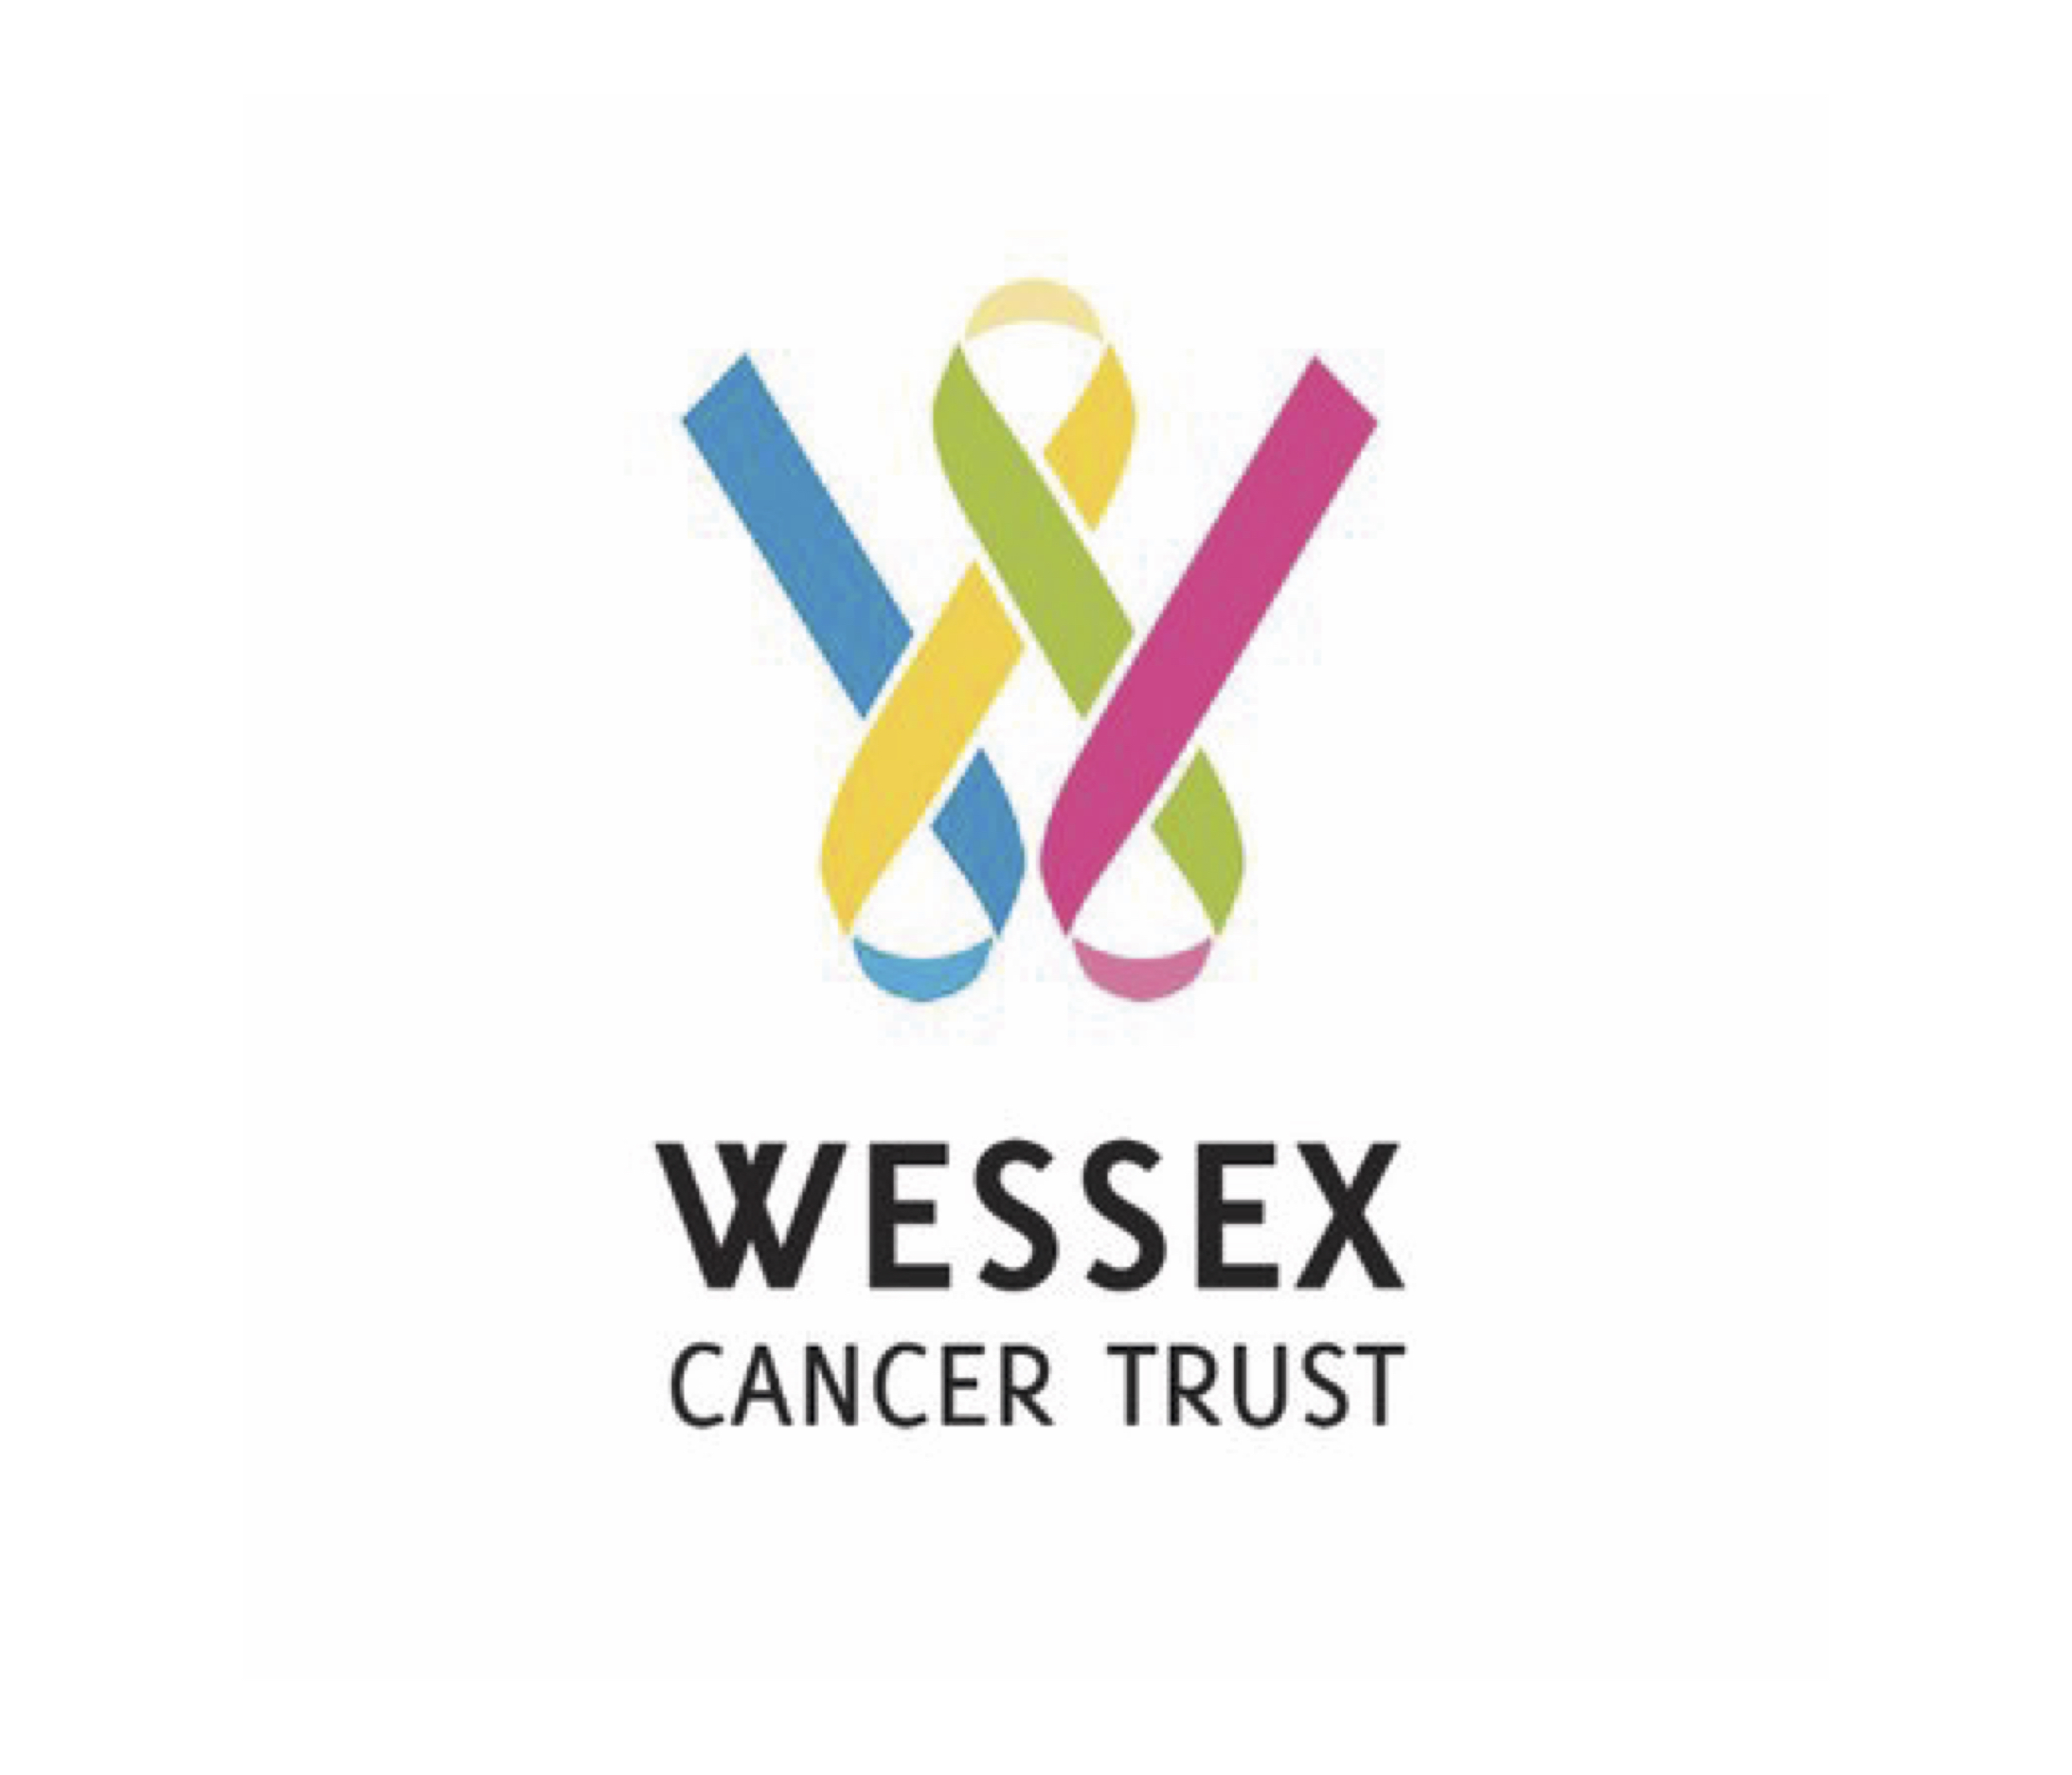 11 wessex cancer trust.jpg